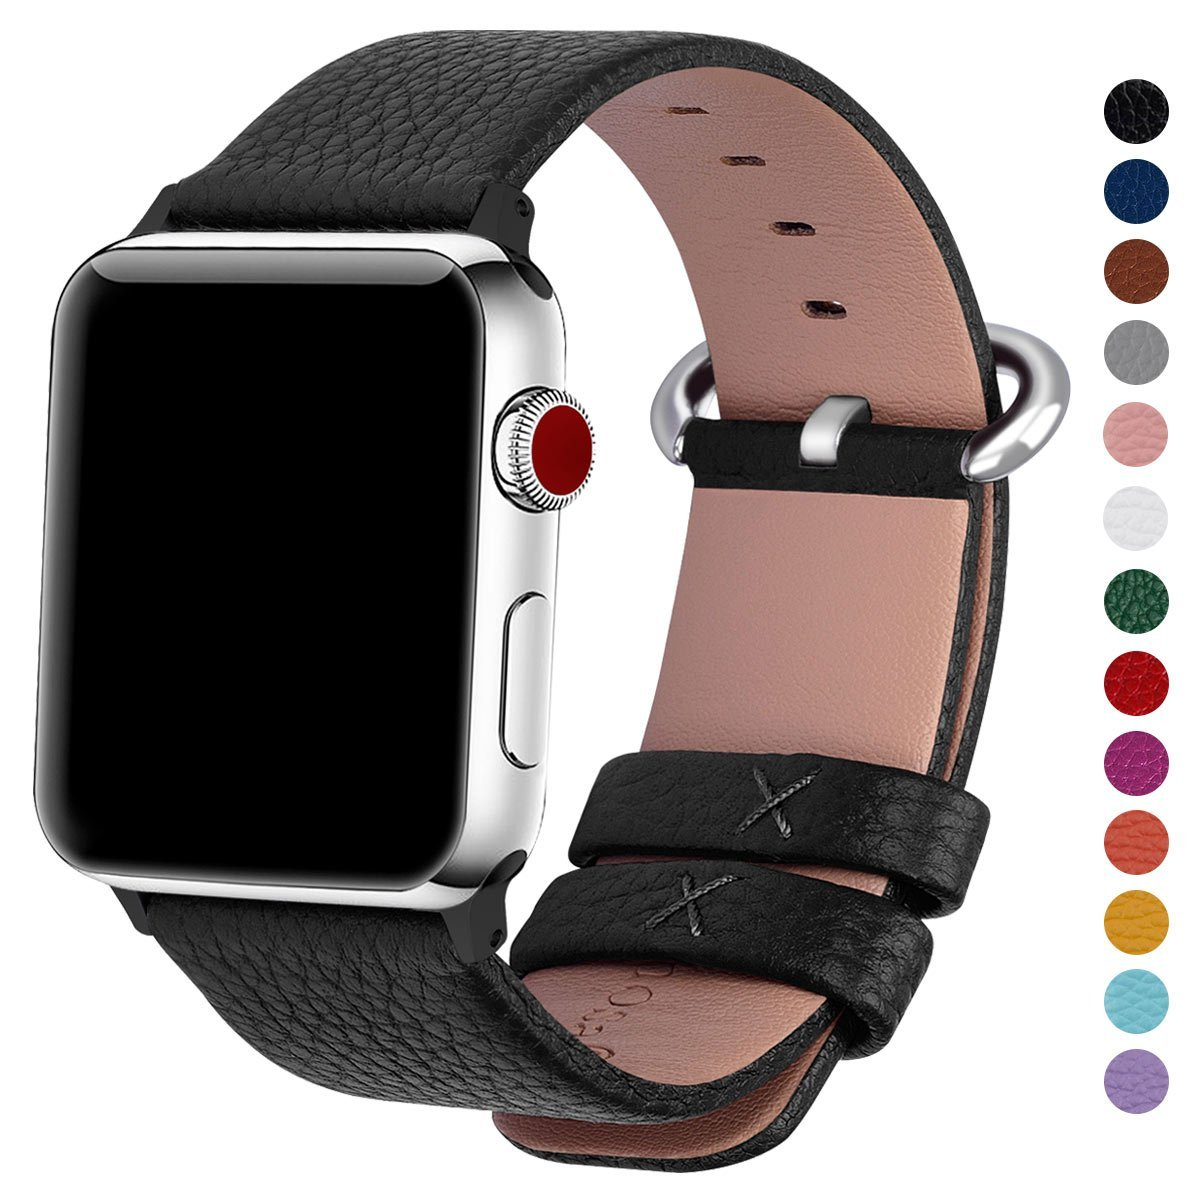 db579f8091d Fullmosa Compatible Apple Watch Band 44mm 42mm 40mm 38mm Calf Leather  Compatible iWatch Band Strap Compatible Apple Watch Series 4 Series 3  Series 2 Series ...